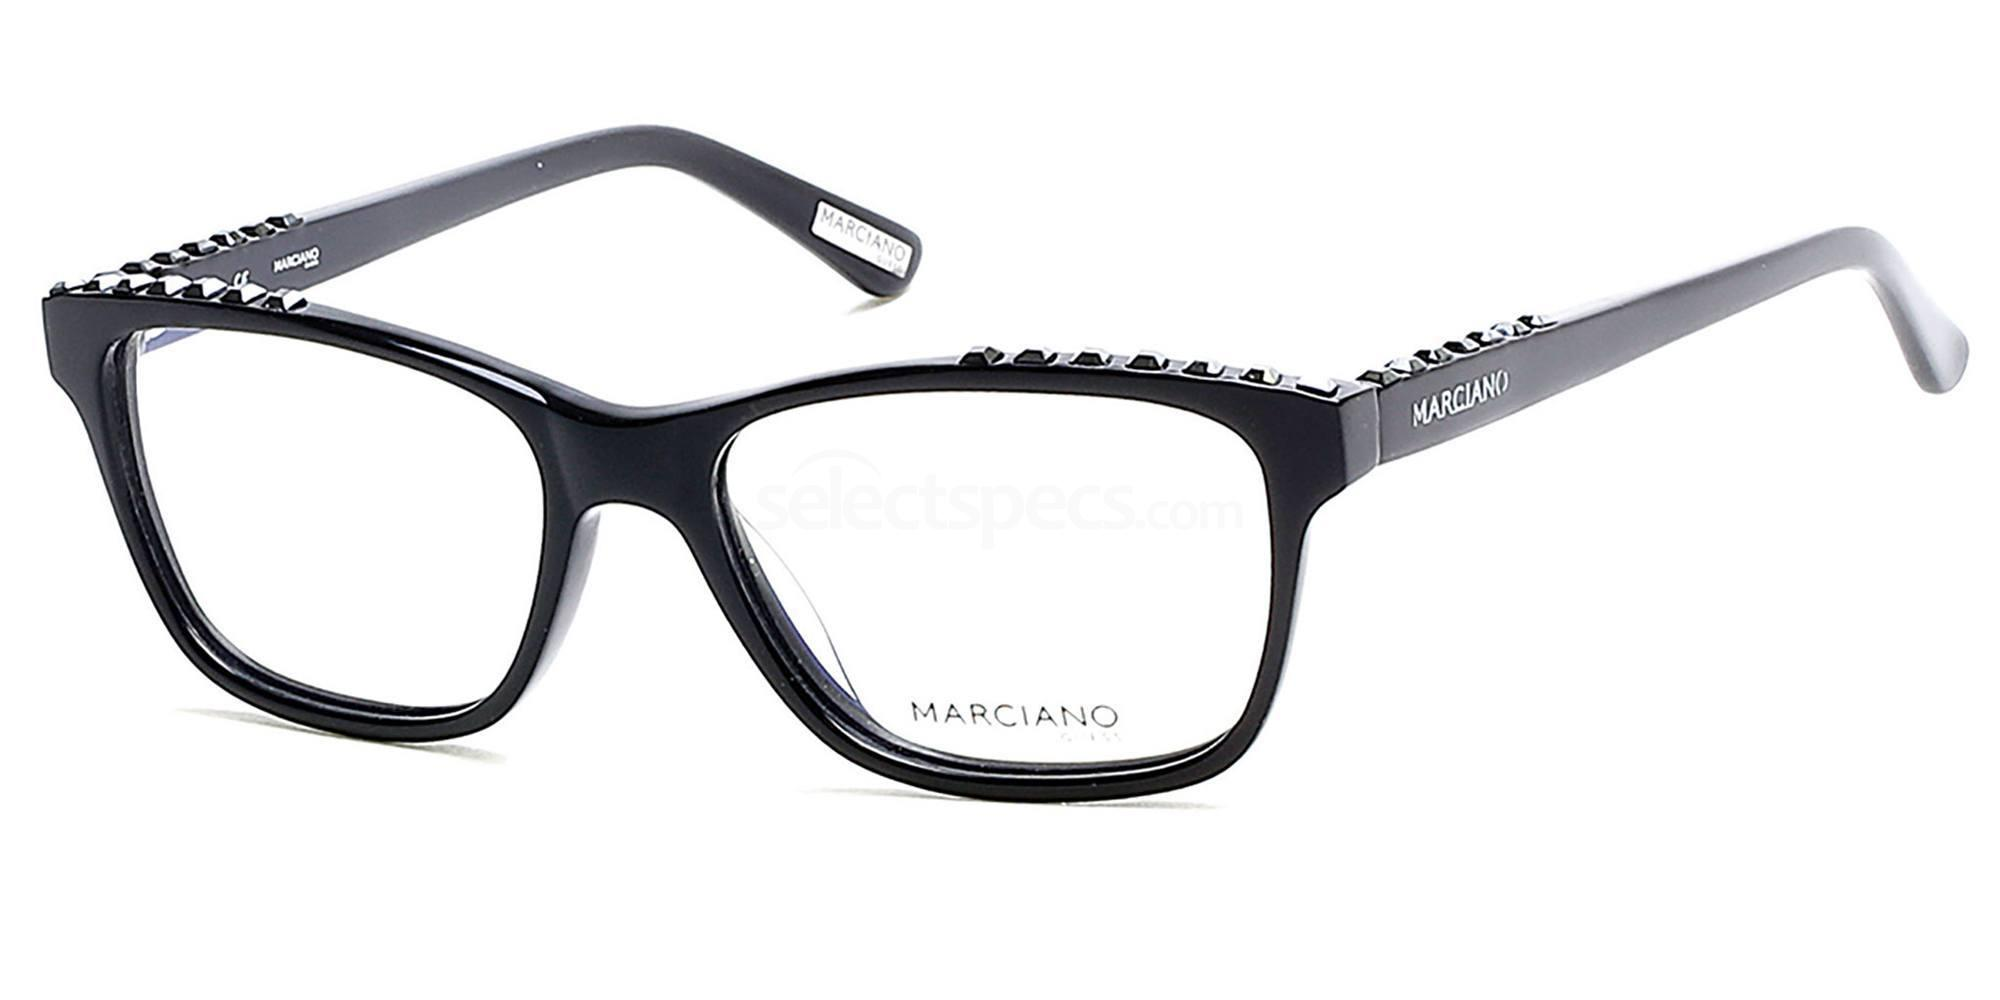 001 GM0283 Glasses, Guess by Marciano